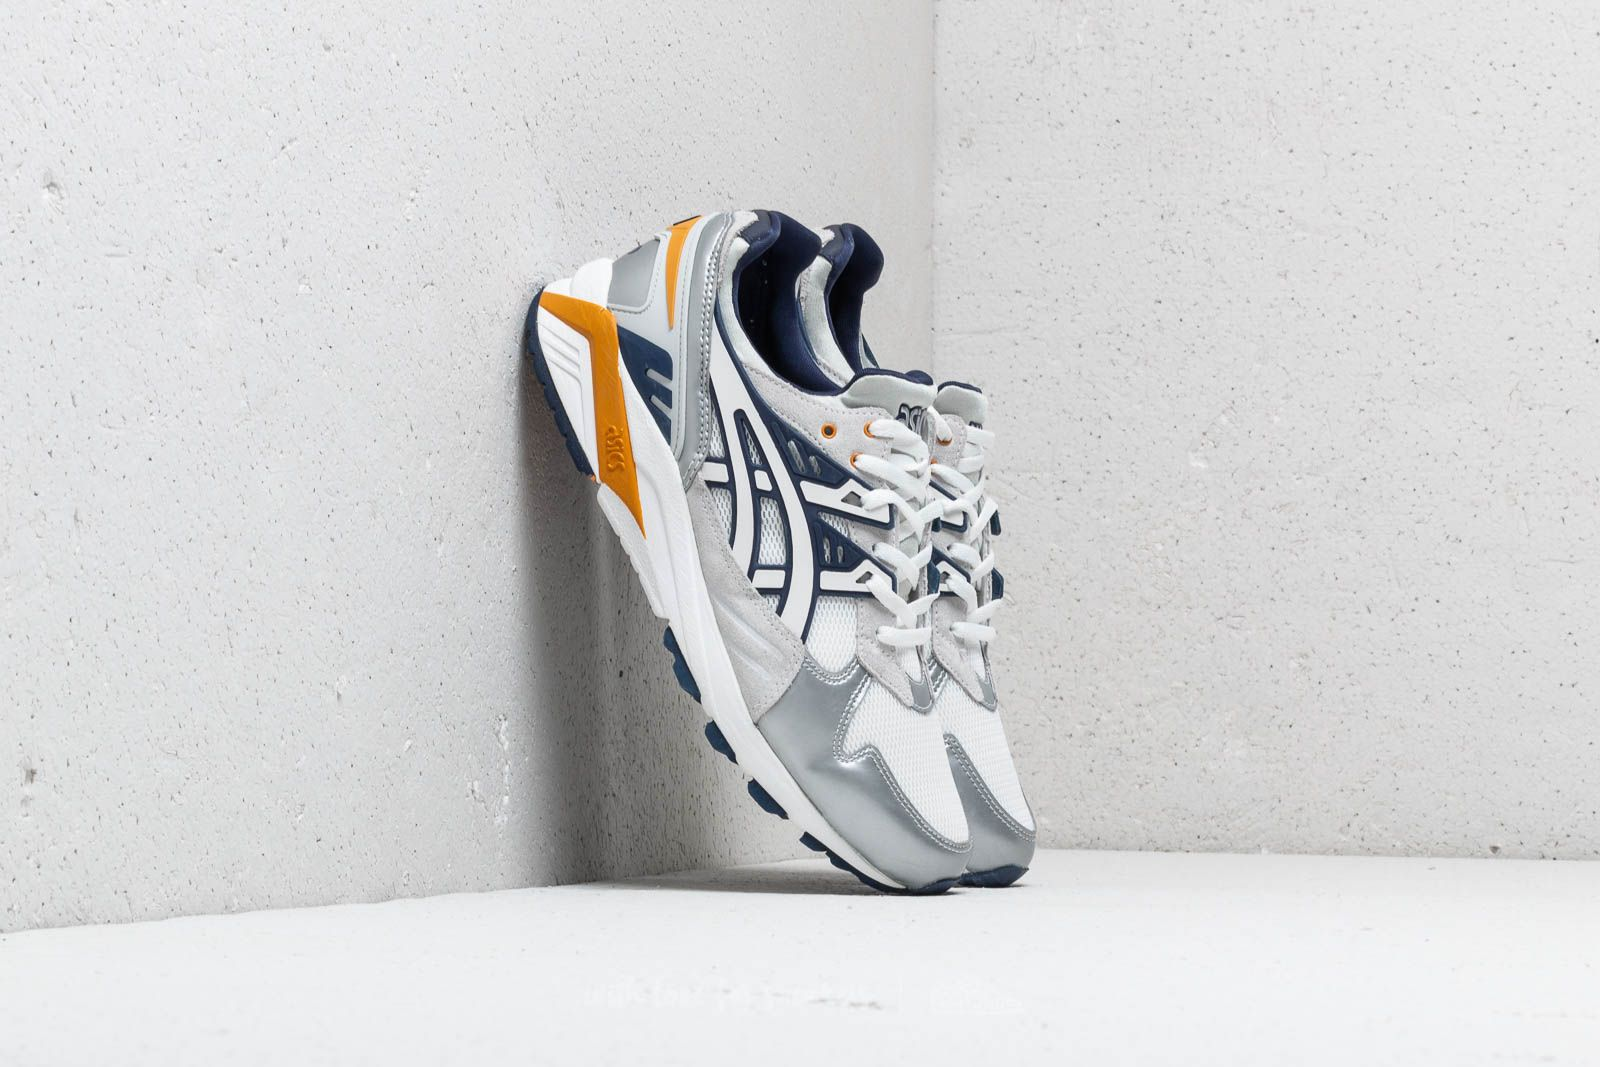 Zapatillas Hombre Asics x Naked Gel-Kayano Trainer White/ Peacoat